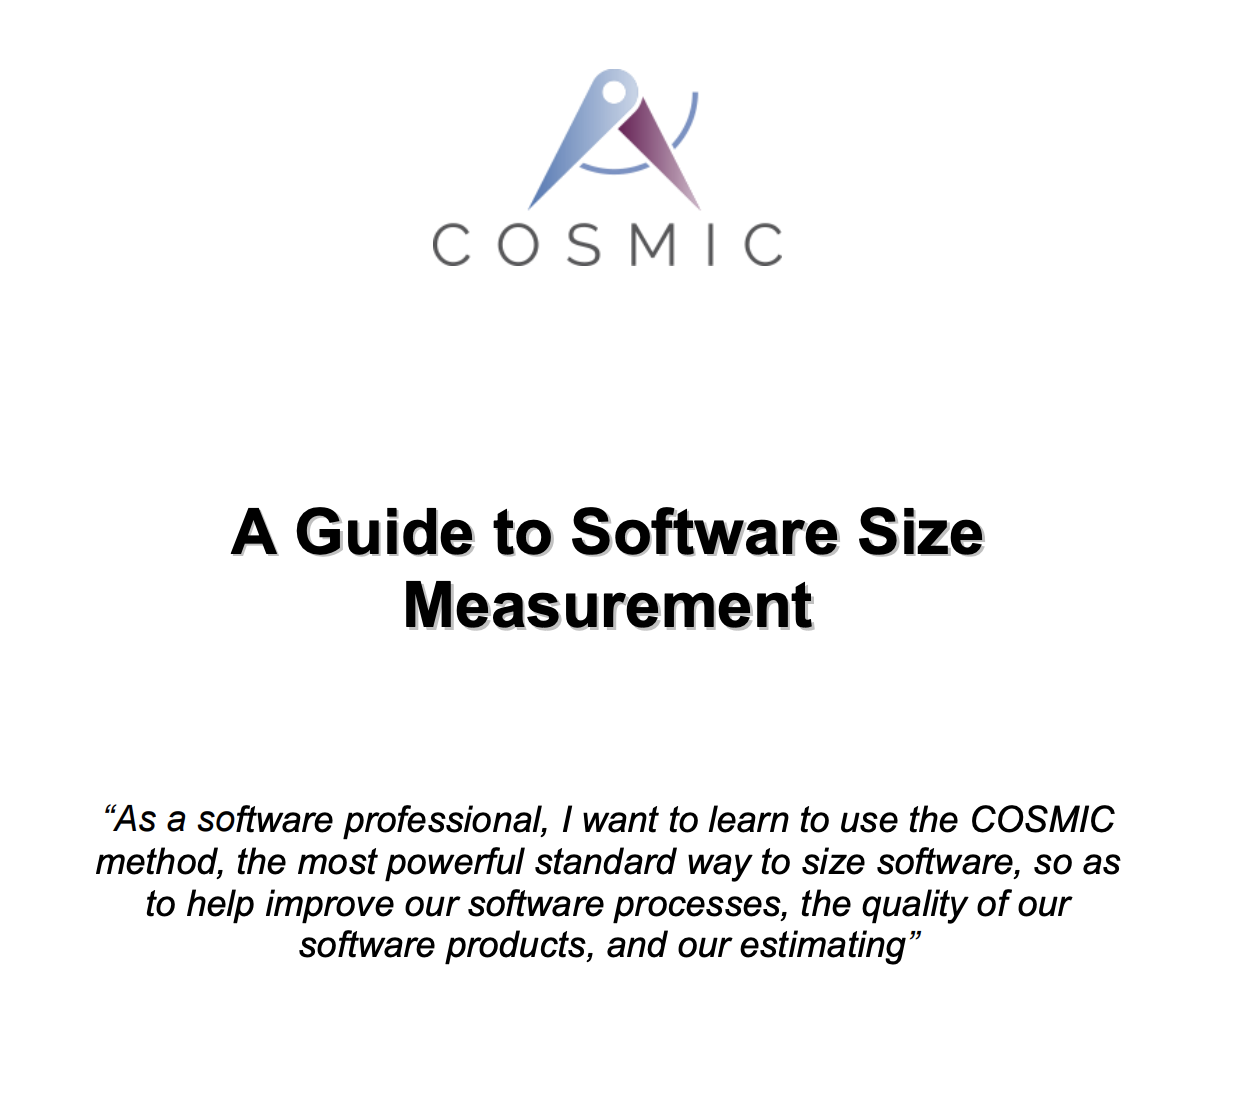 A guide to software size measurement